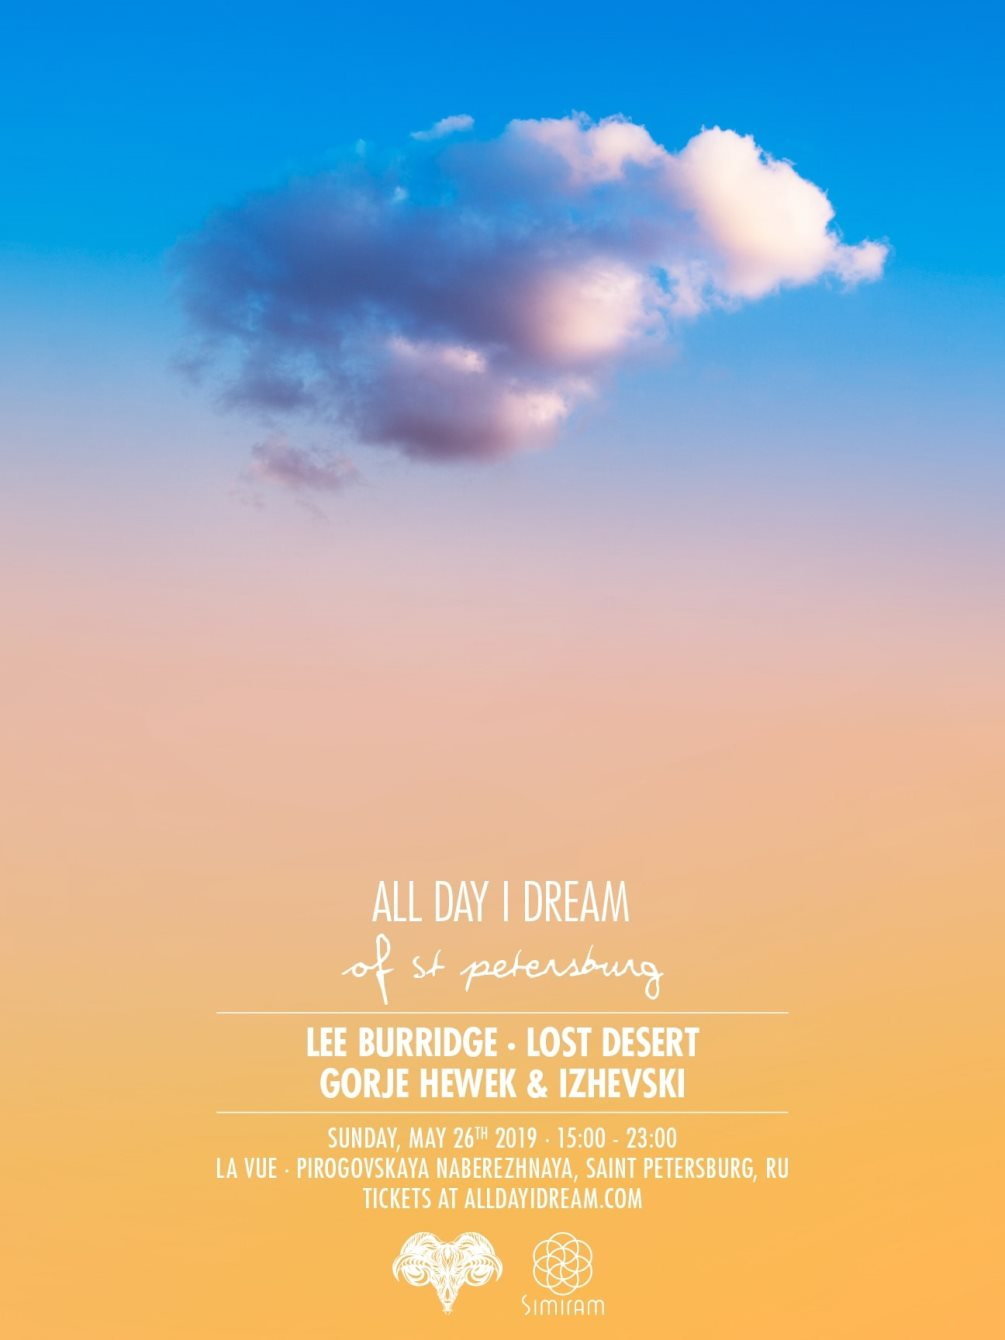 All Day I Dream - St Petersburg - Flyer front